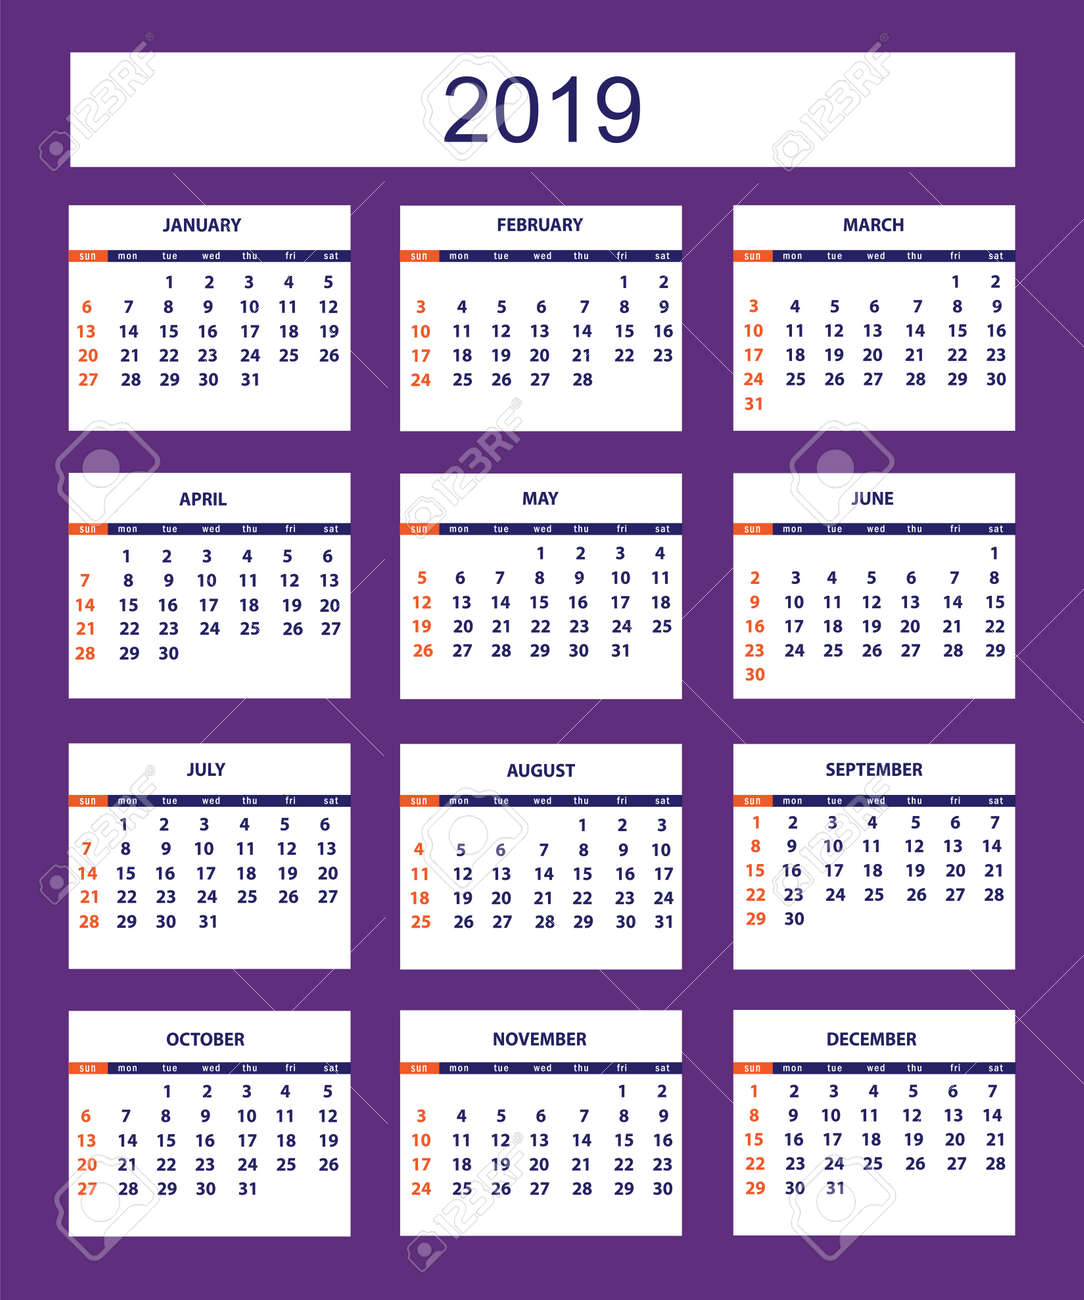 American Calendar 2019 Classic American Calendar For Wall Year 2019 On The Violet